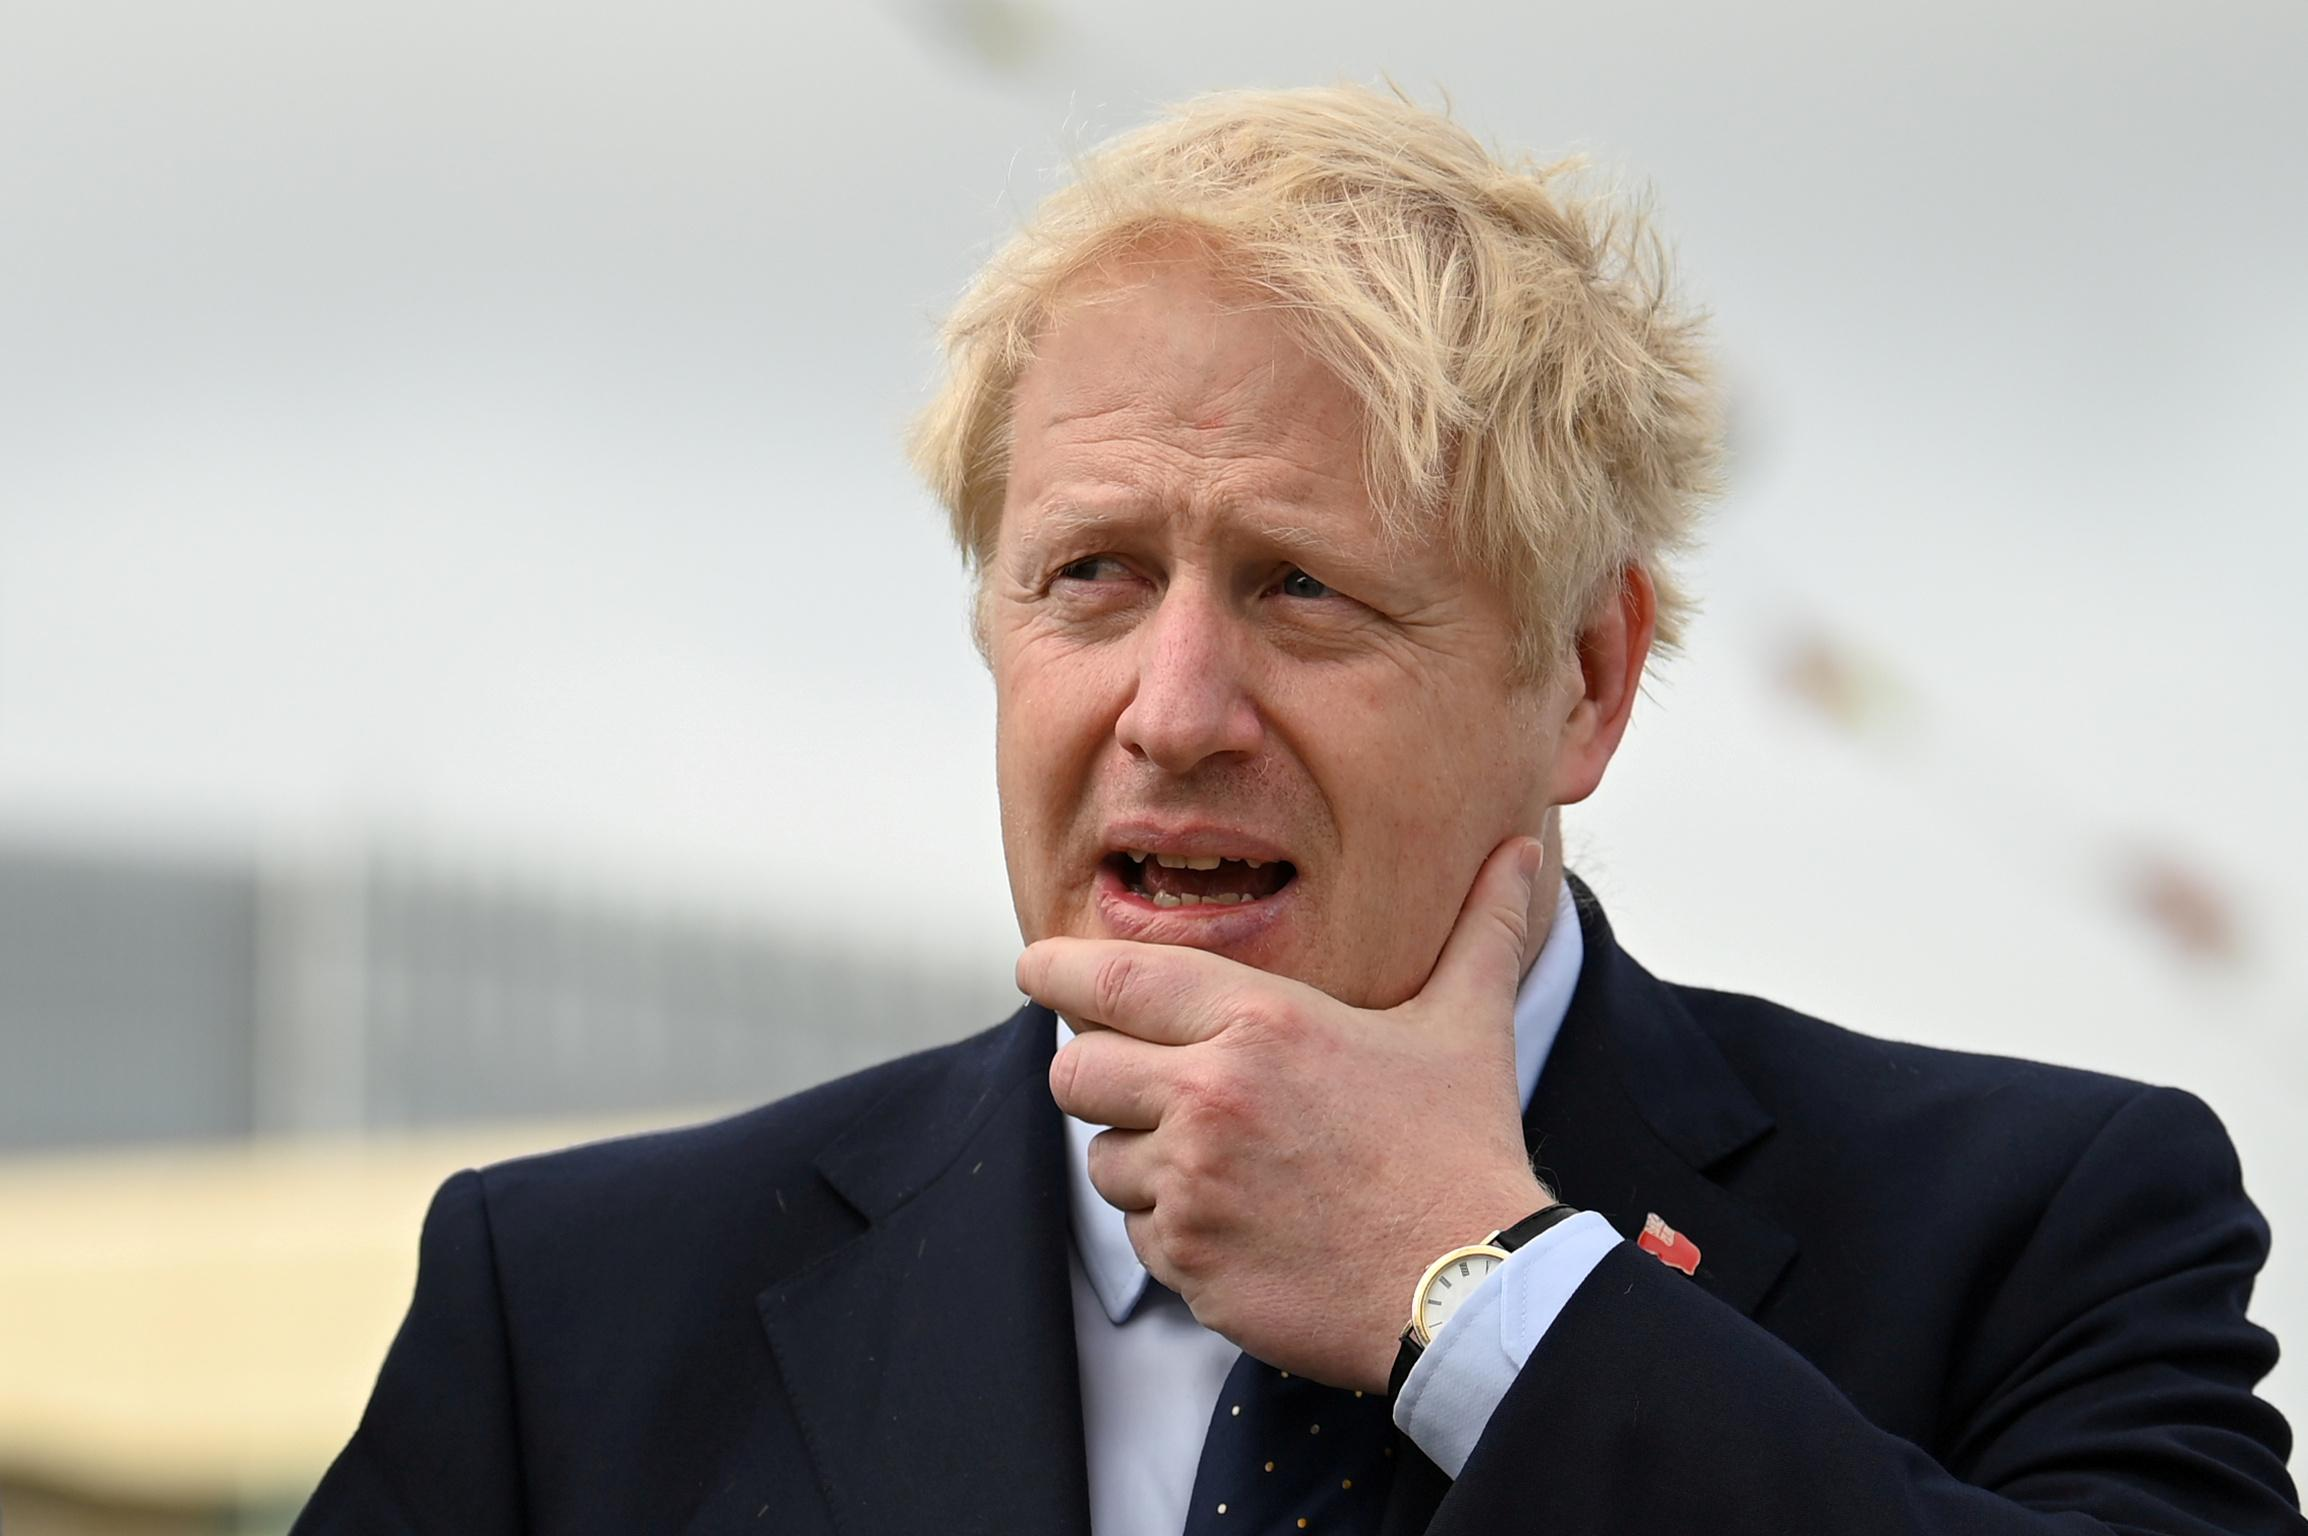 Johnson, likening himself to Incredible Hulk, vows October 31 Brexit